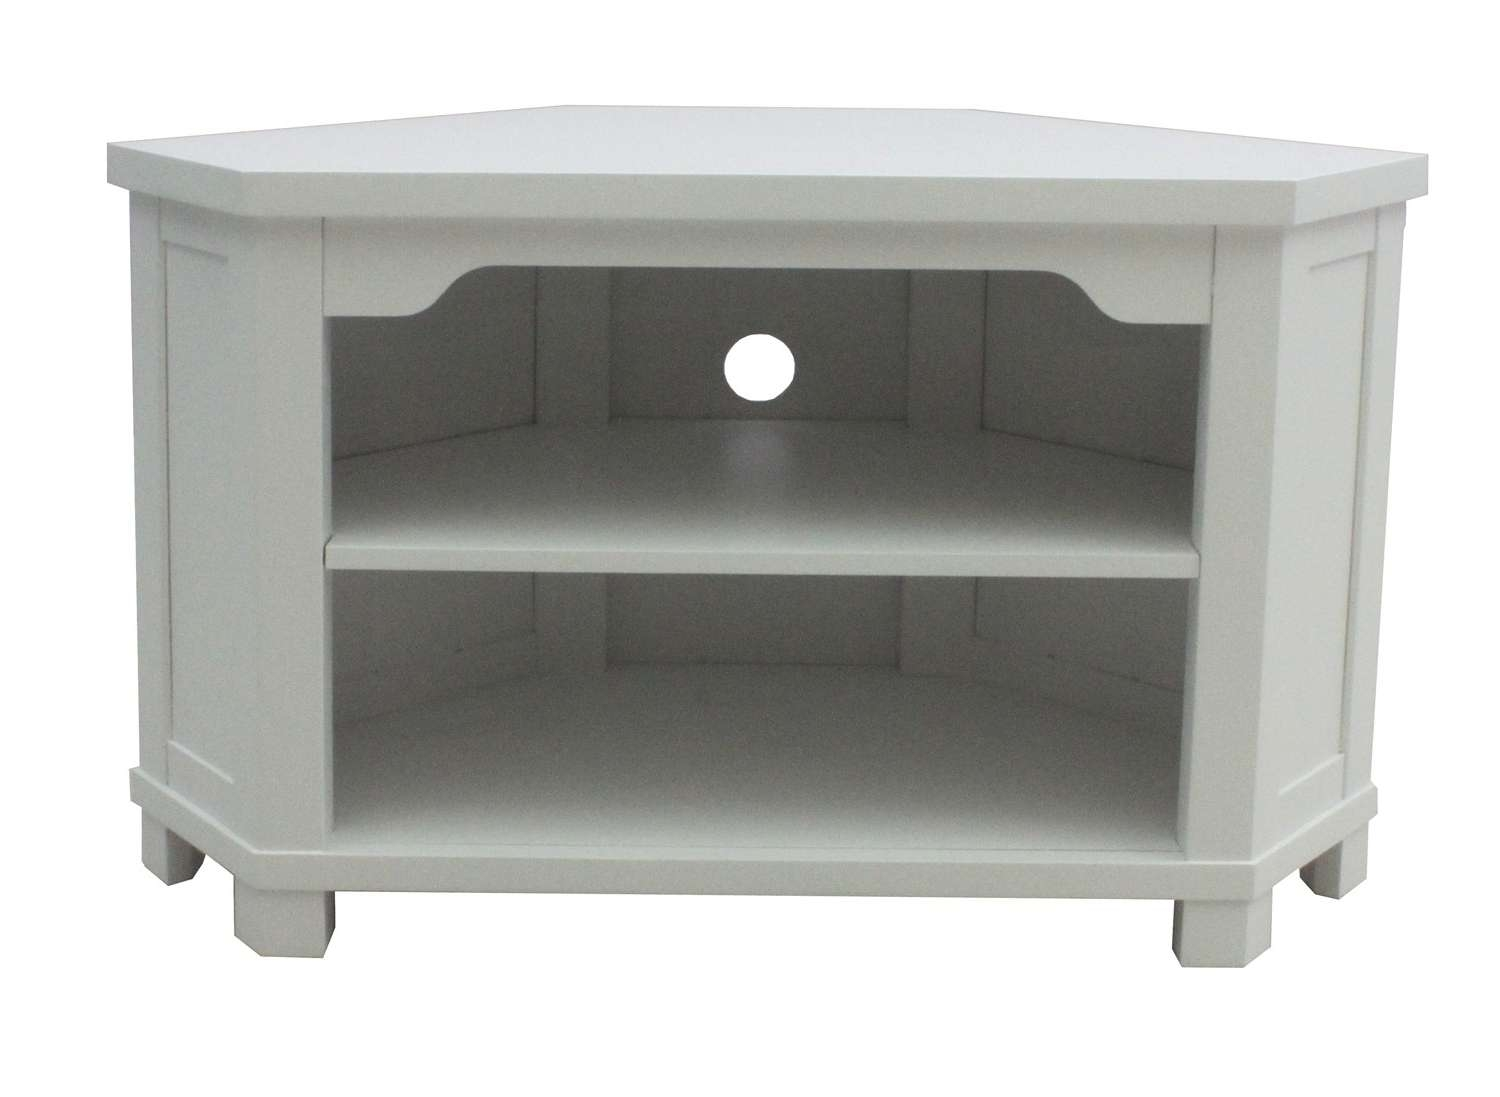 Small White Corner Tv Stand Stands Tall Standor Bedroom Trends With Regard To White Corner Tv Cabinets (View 11 of 20)